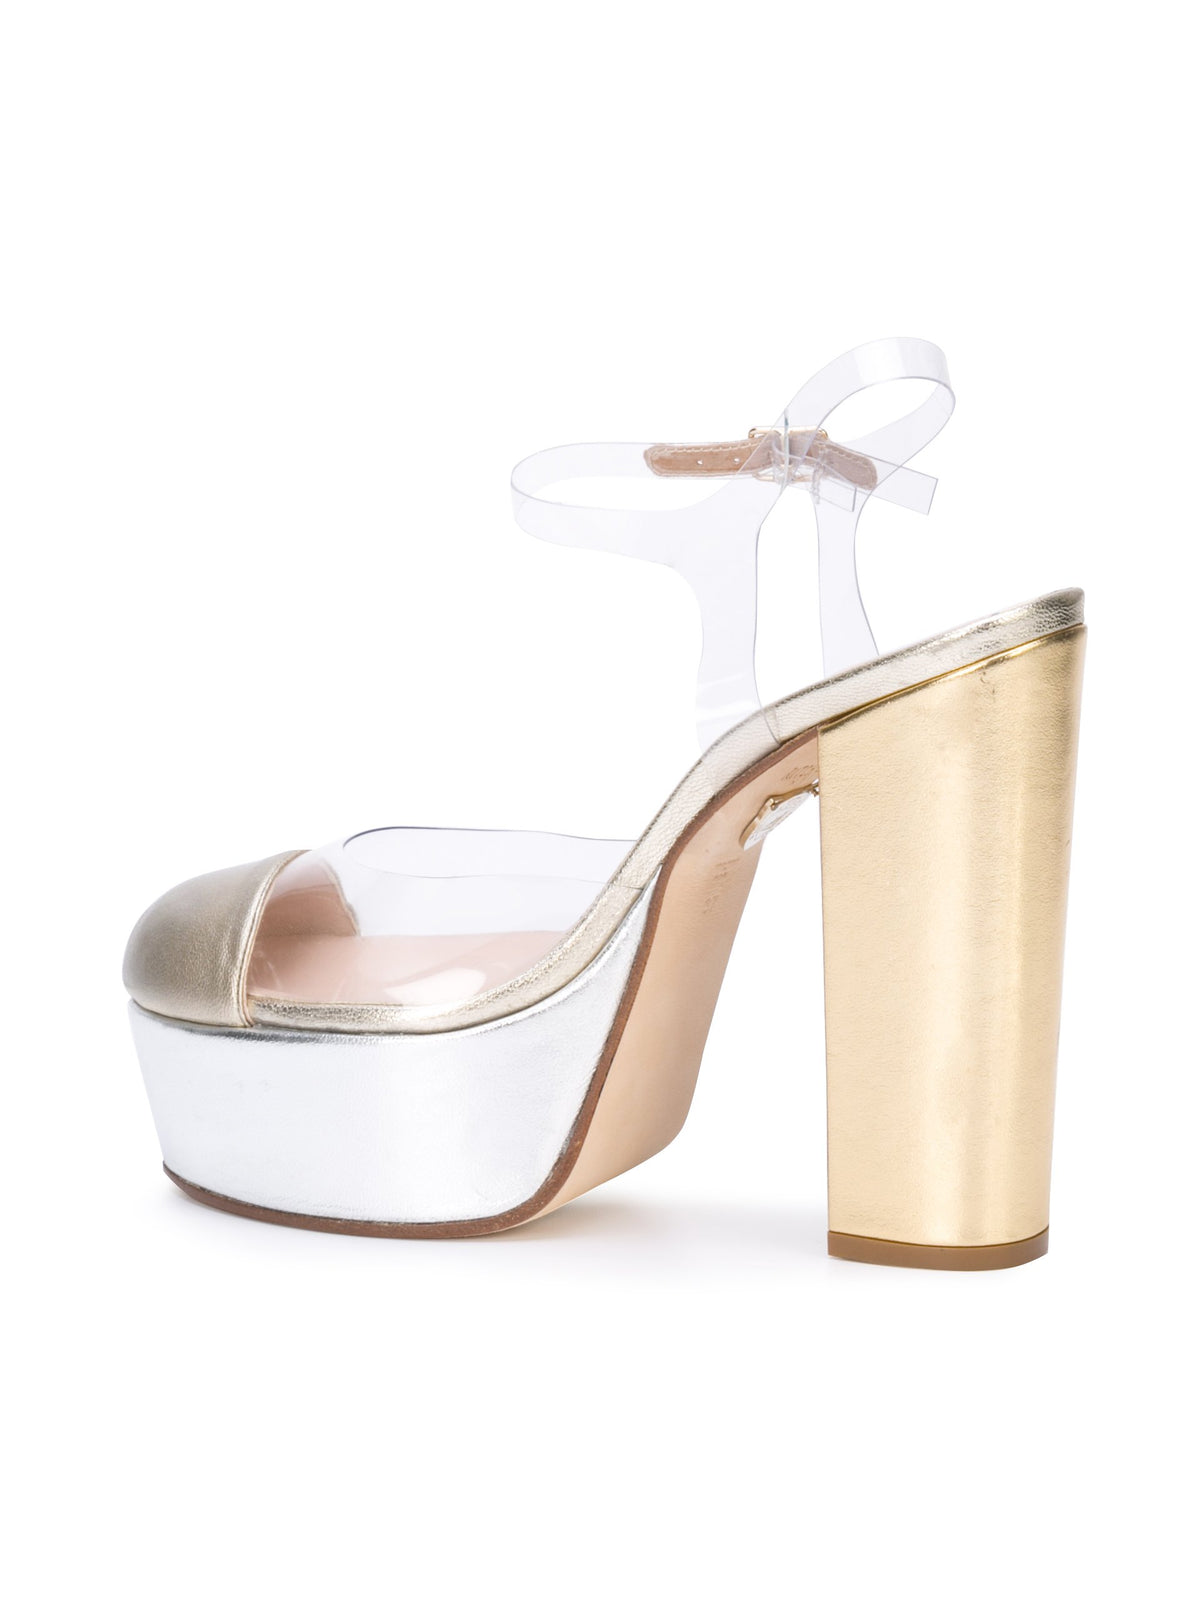 Gilda Platform - Gold & silver metallic leather and pvc with platform. Back Angle View